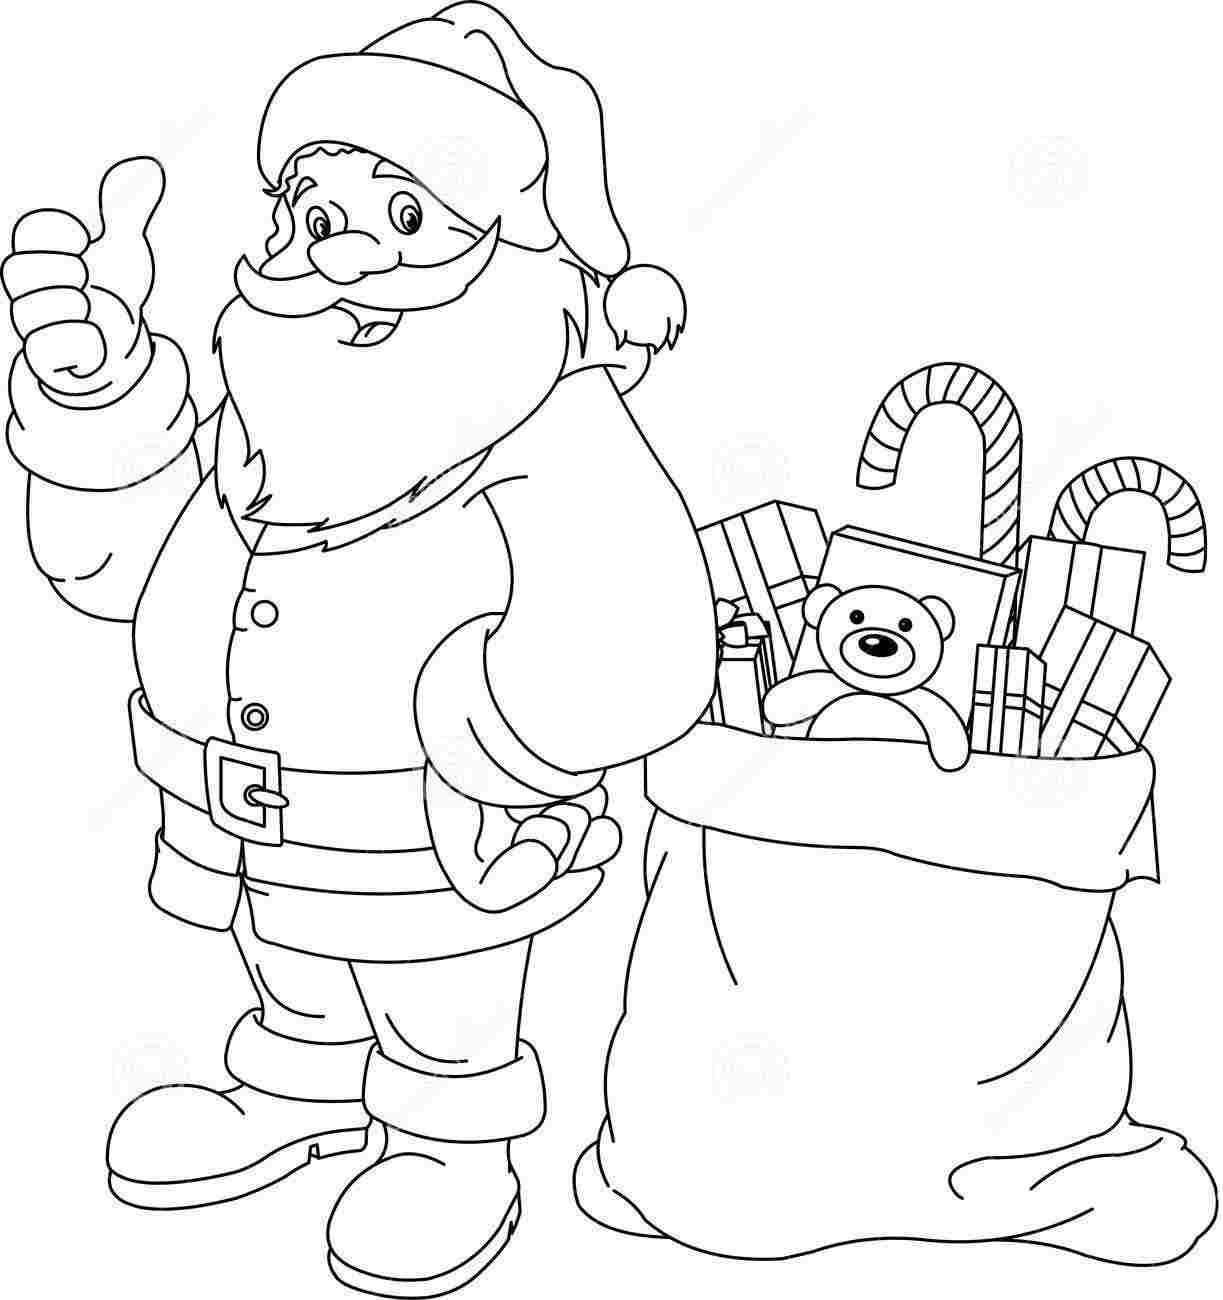 1223x1300 Santa Claus Coloring Pages 01 Coloring Pages For Kids